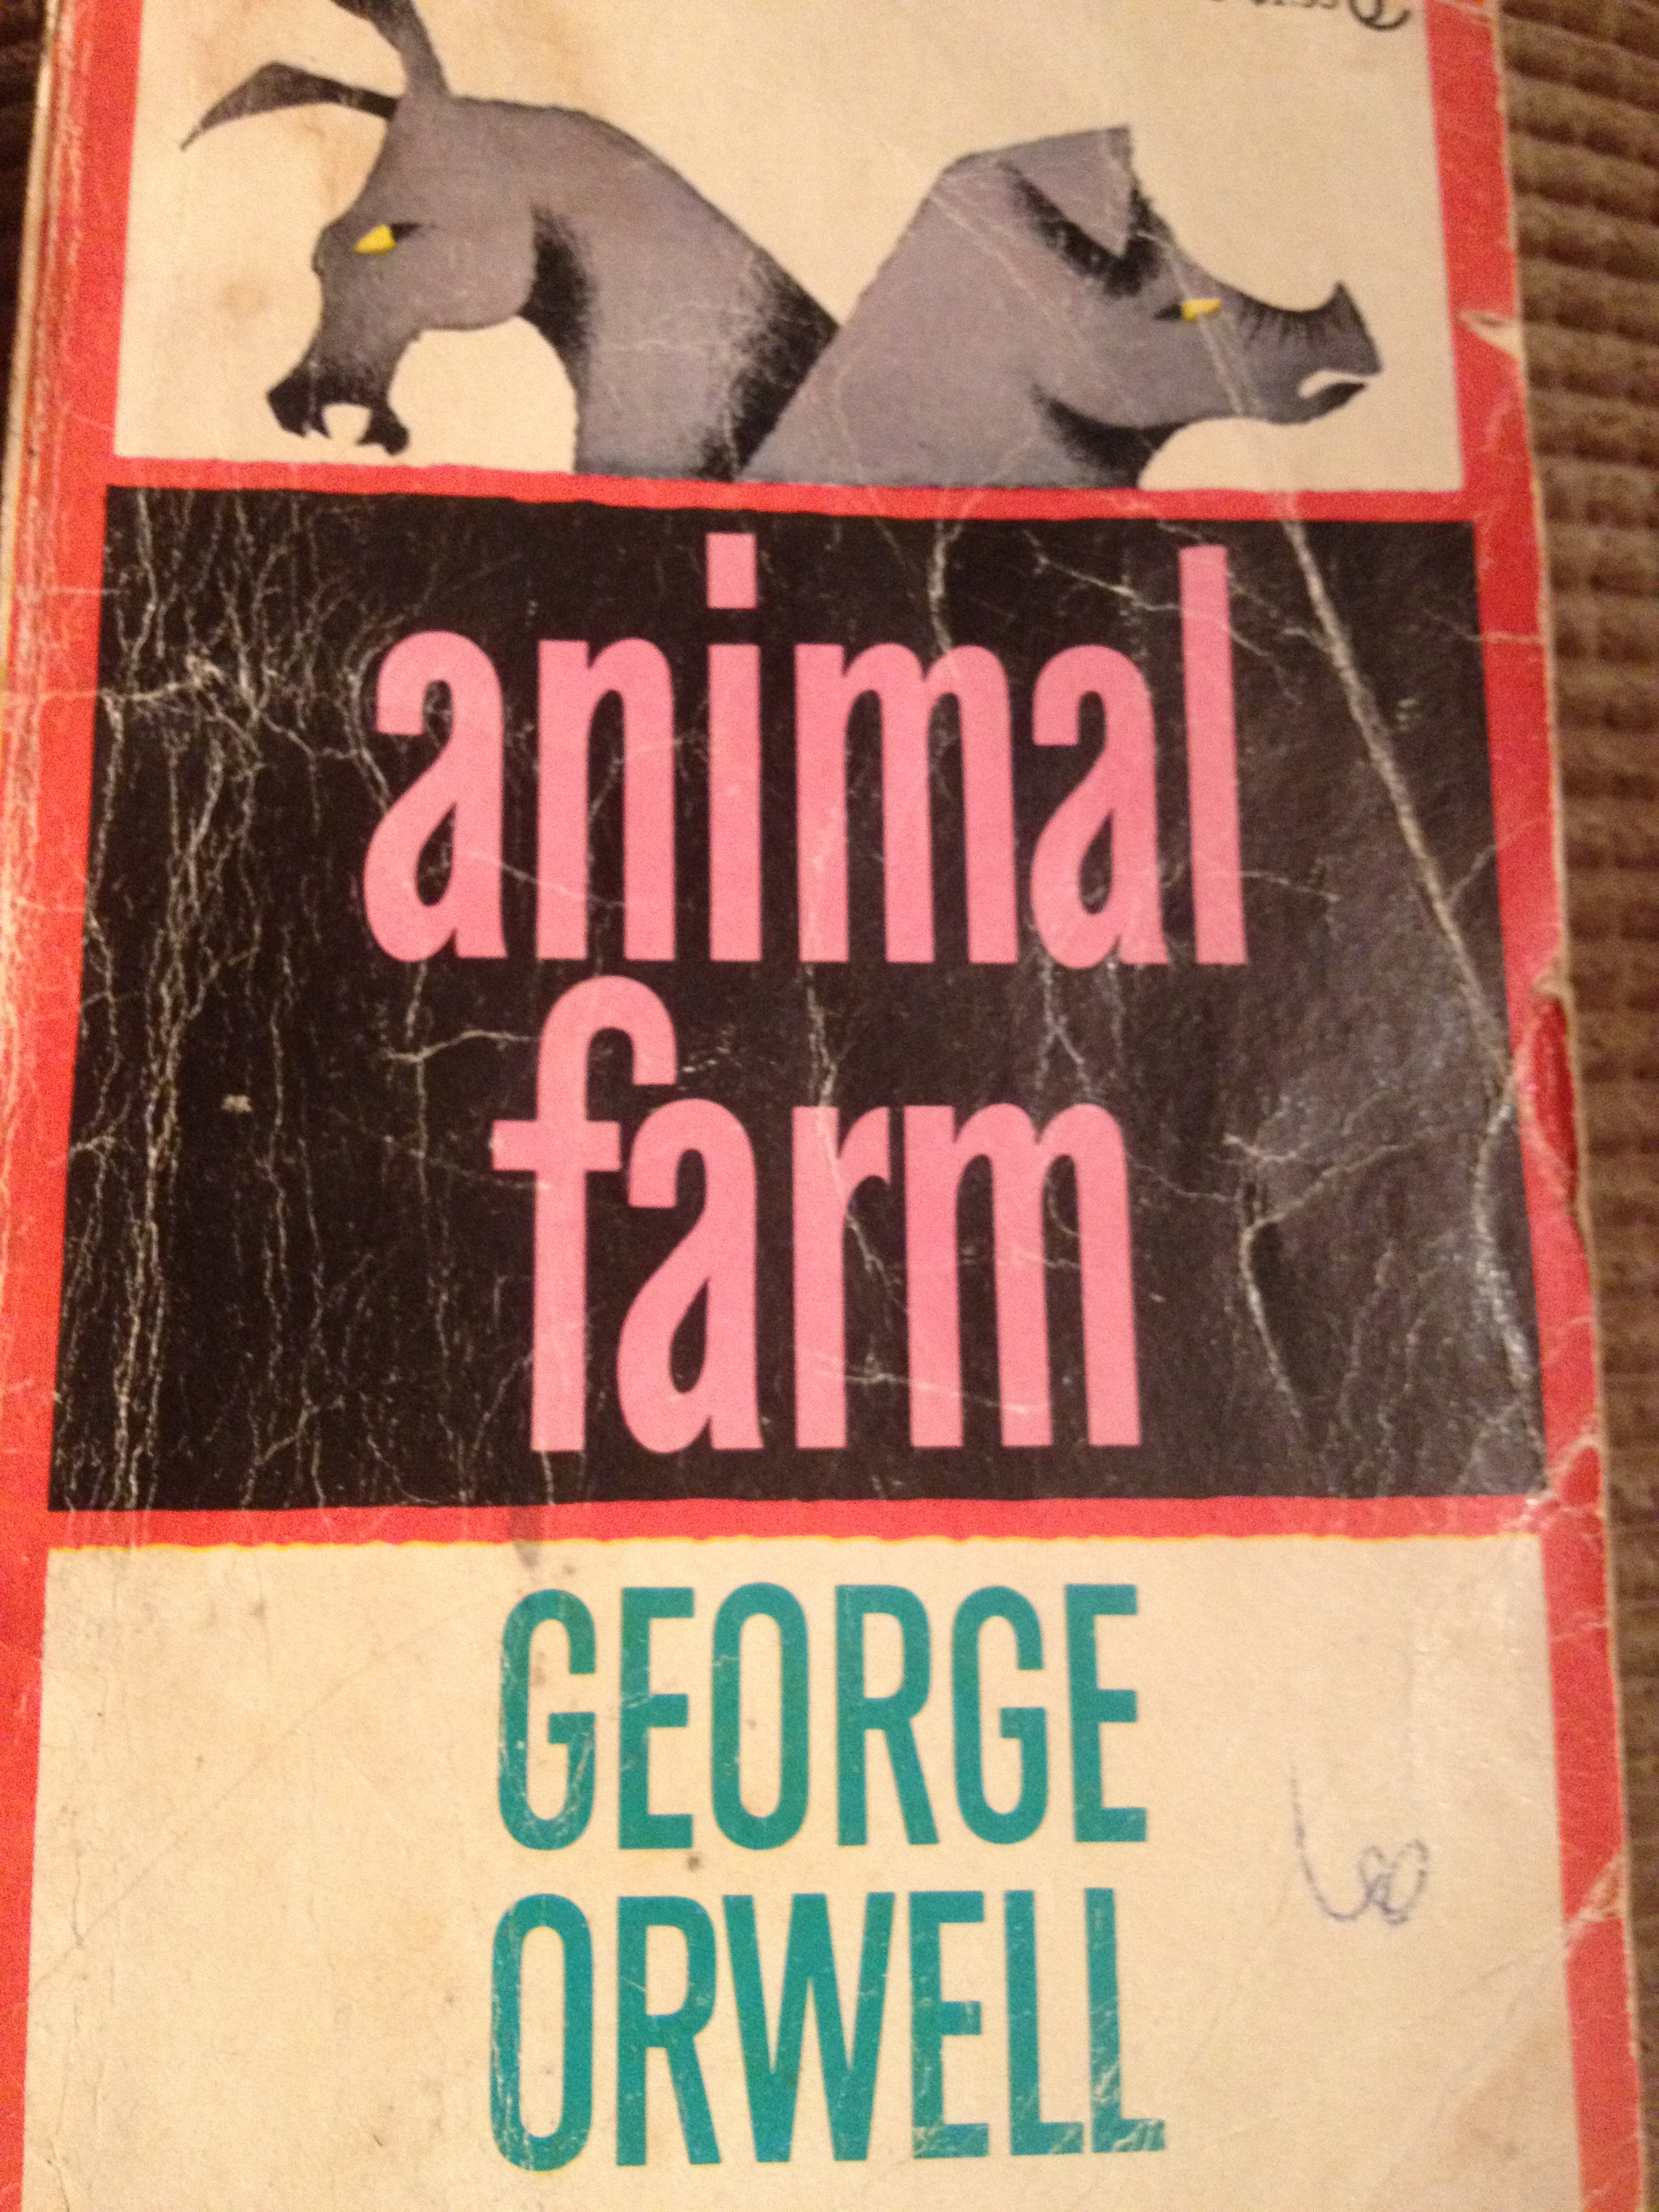 essay on animal farm conclusion Animal farm essay george orwell conclusion in the very last in animal farm, squealer, a large and clever pig, represents the propaganda.